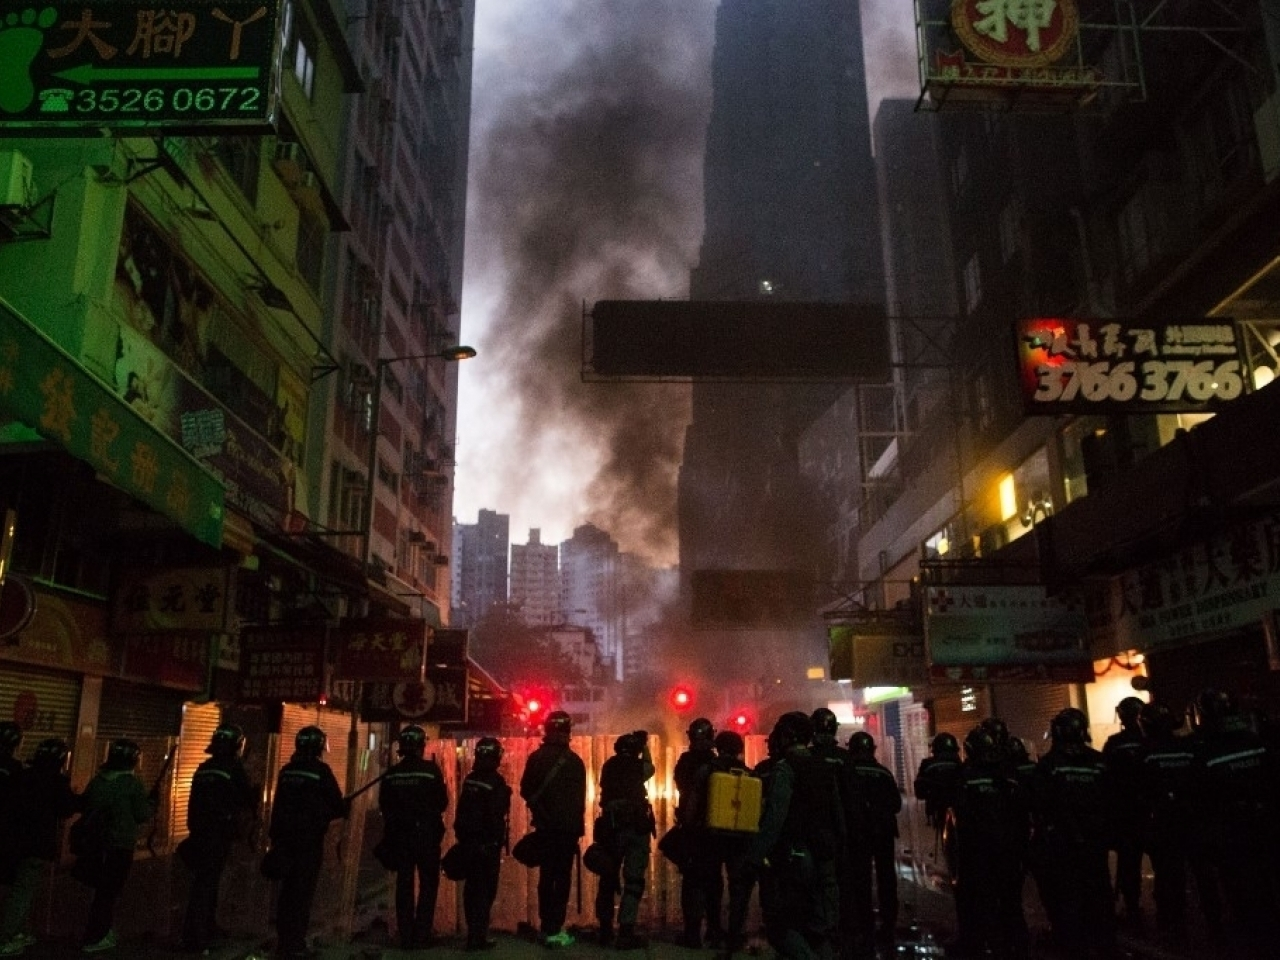 CFA agrees to hear appeal over 2016 Mong Kok unrest